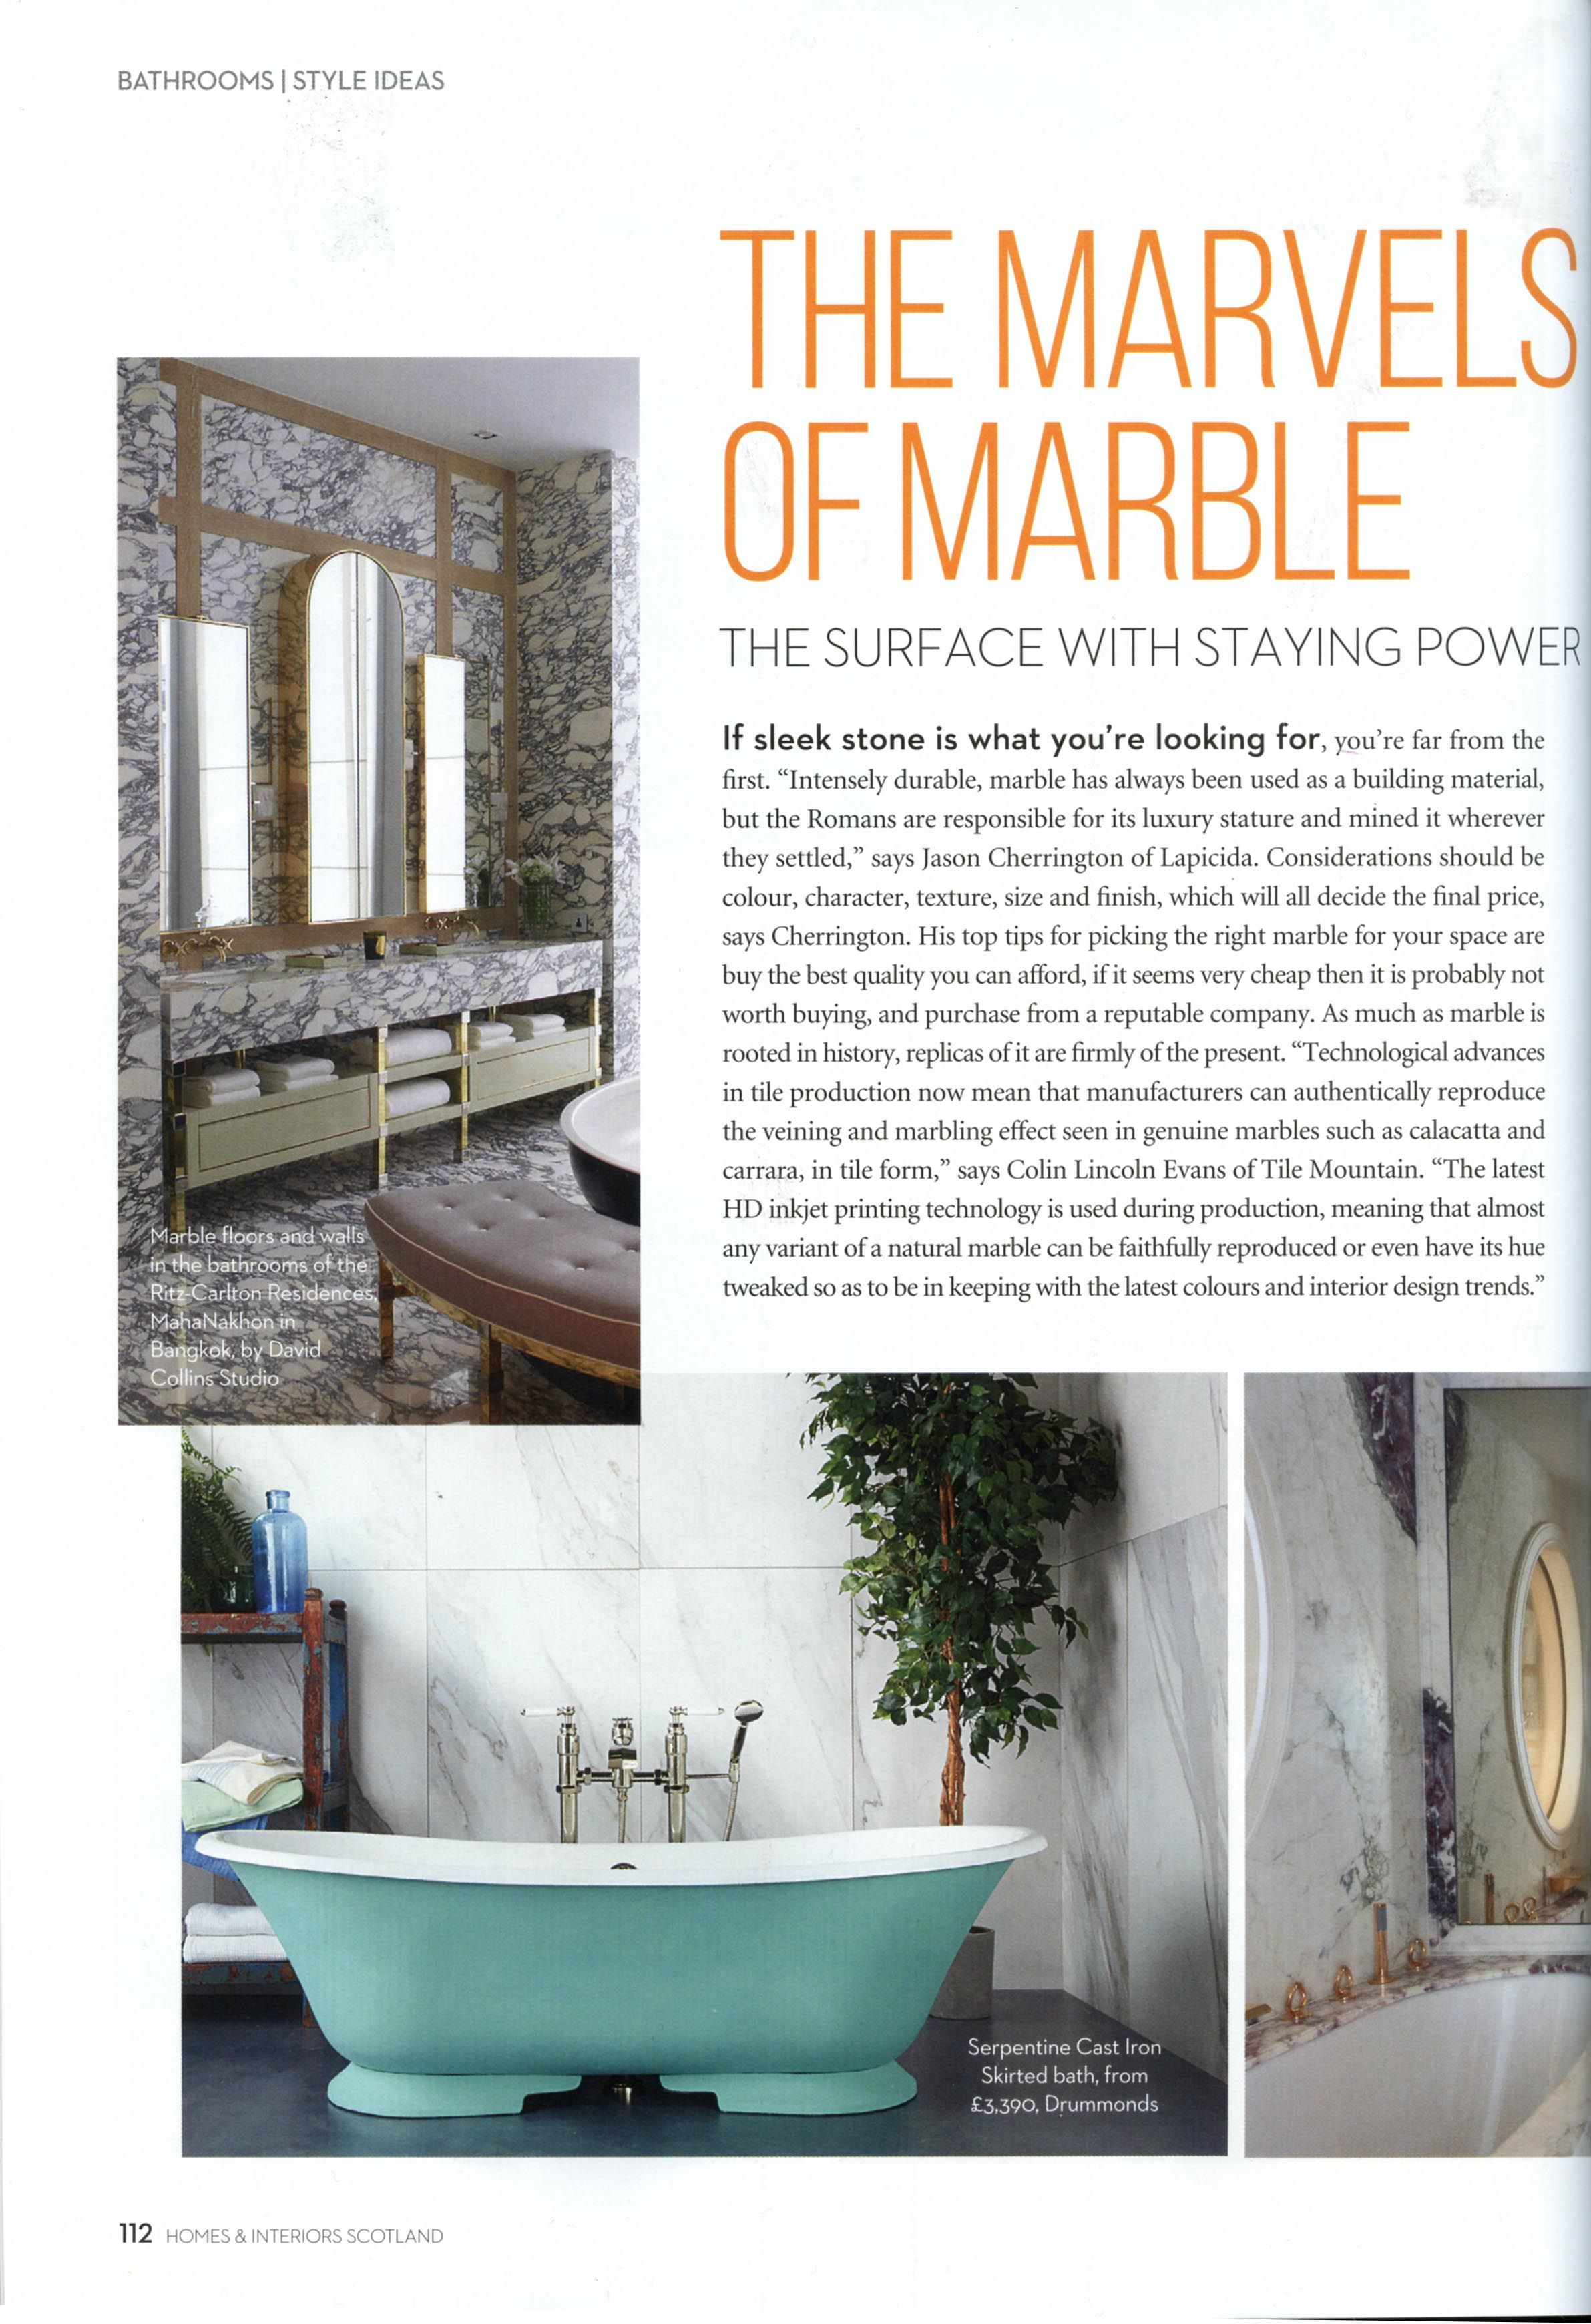 Here Is Some Useful Advise About Marble From Jason Cherrington Of